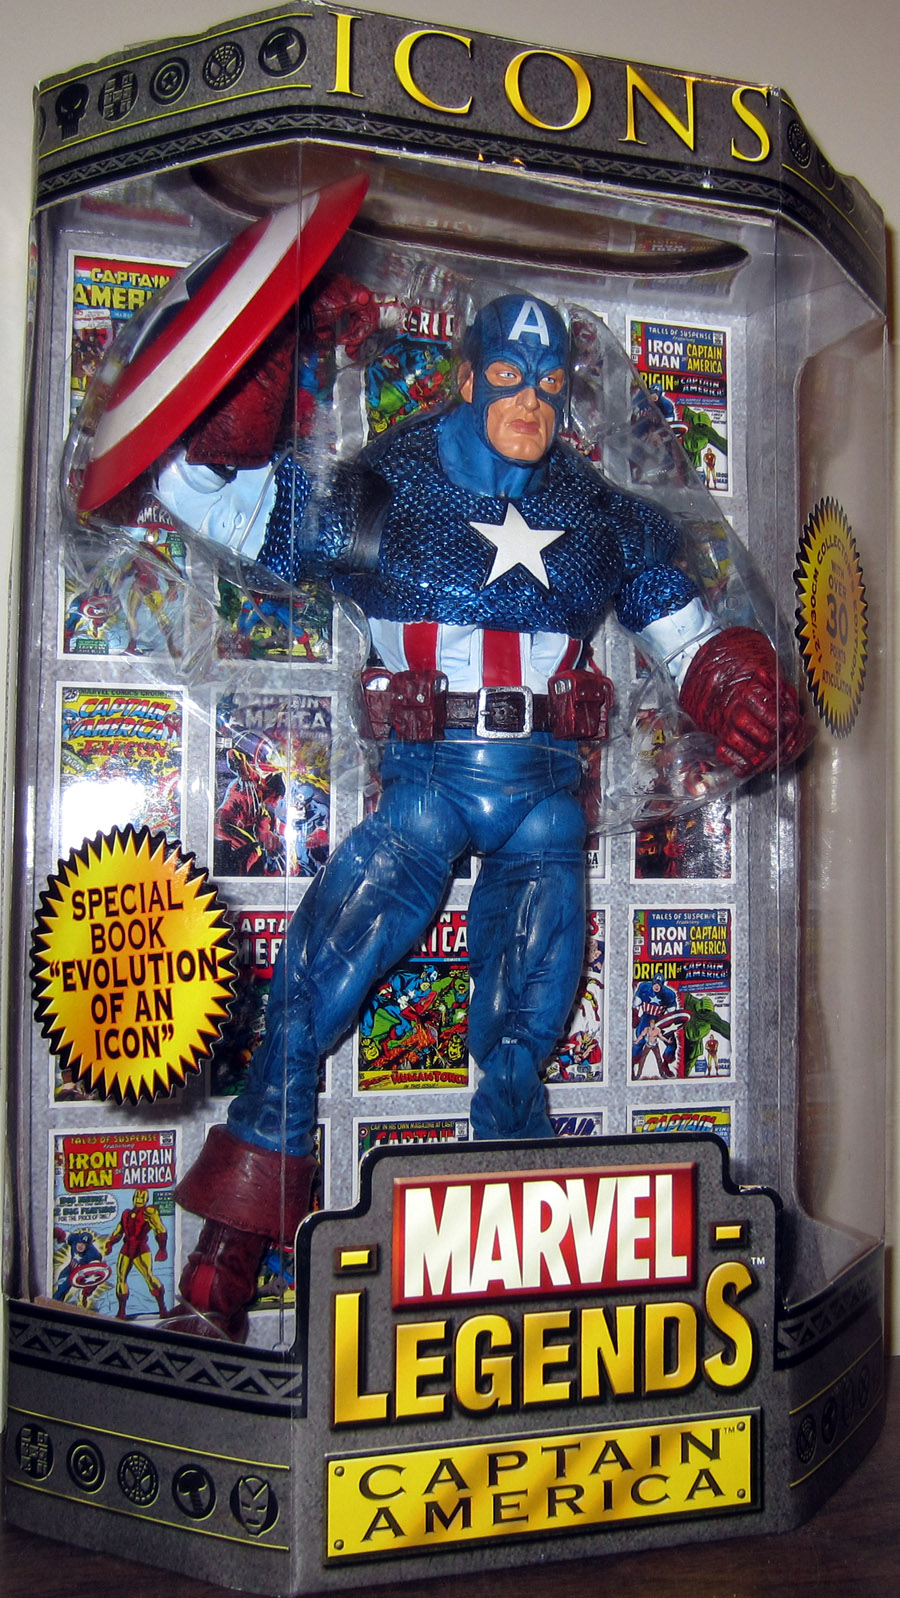 12inchcaptainamerica-ml.jpg